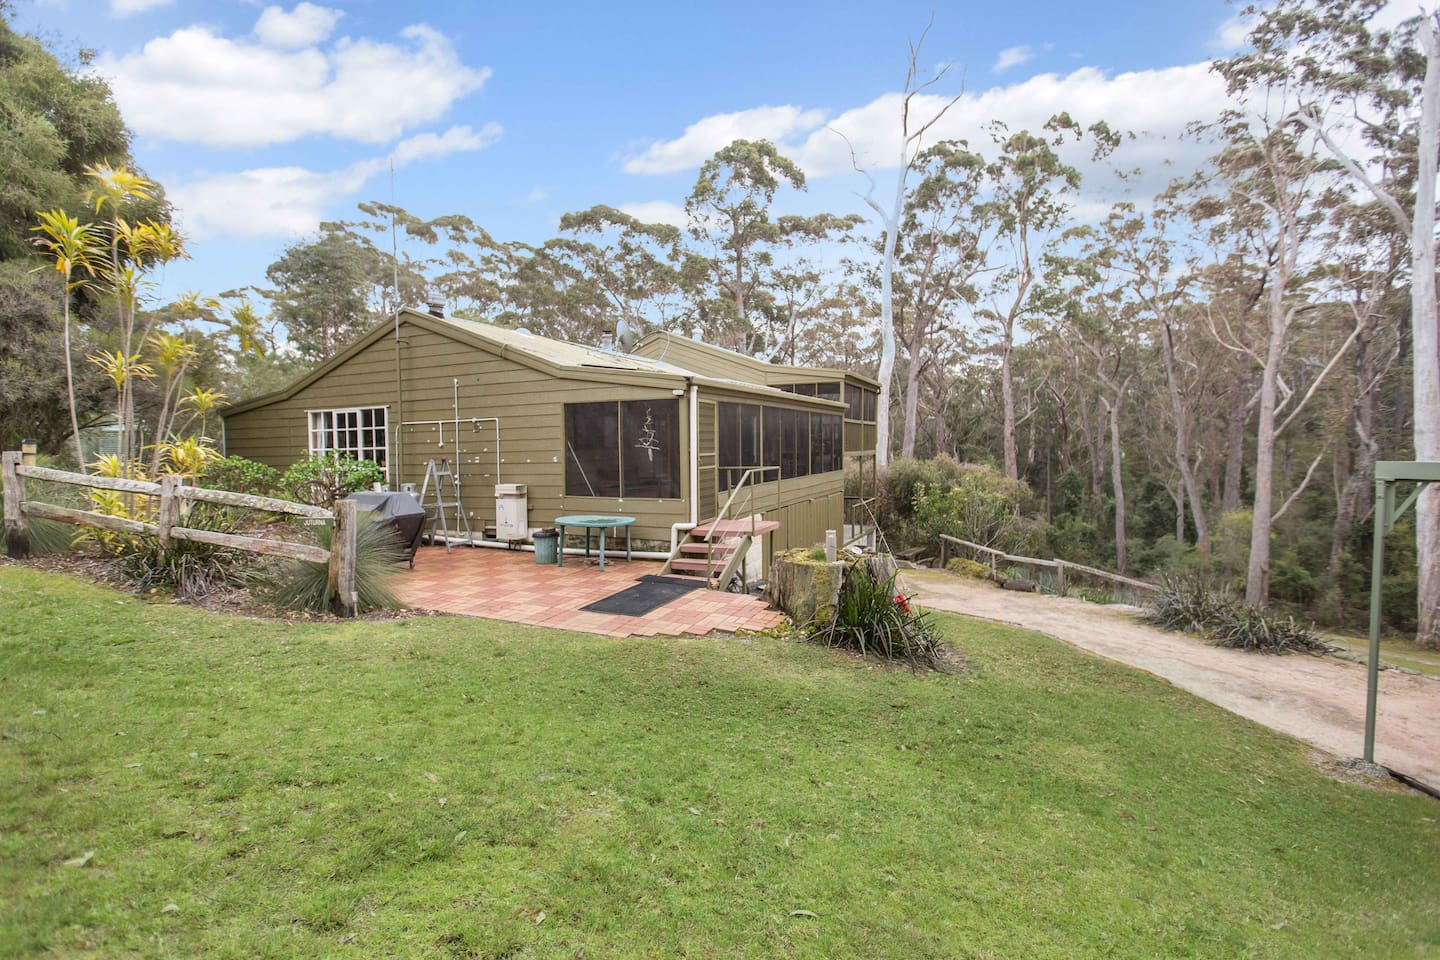 Wilderness retreat - with tranquil views surrounded by peaceful bushland and only a stroll from the lake waters.